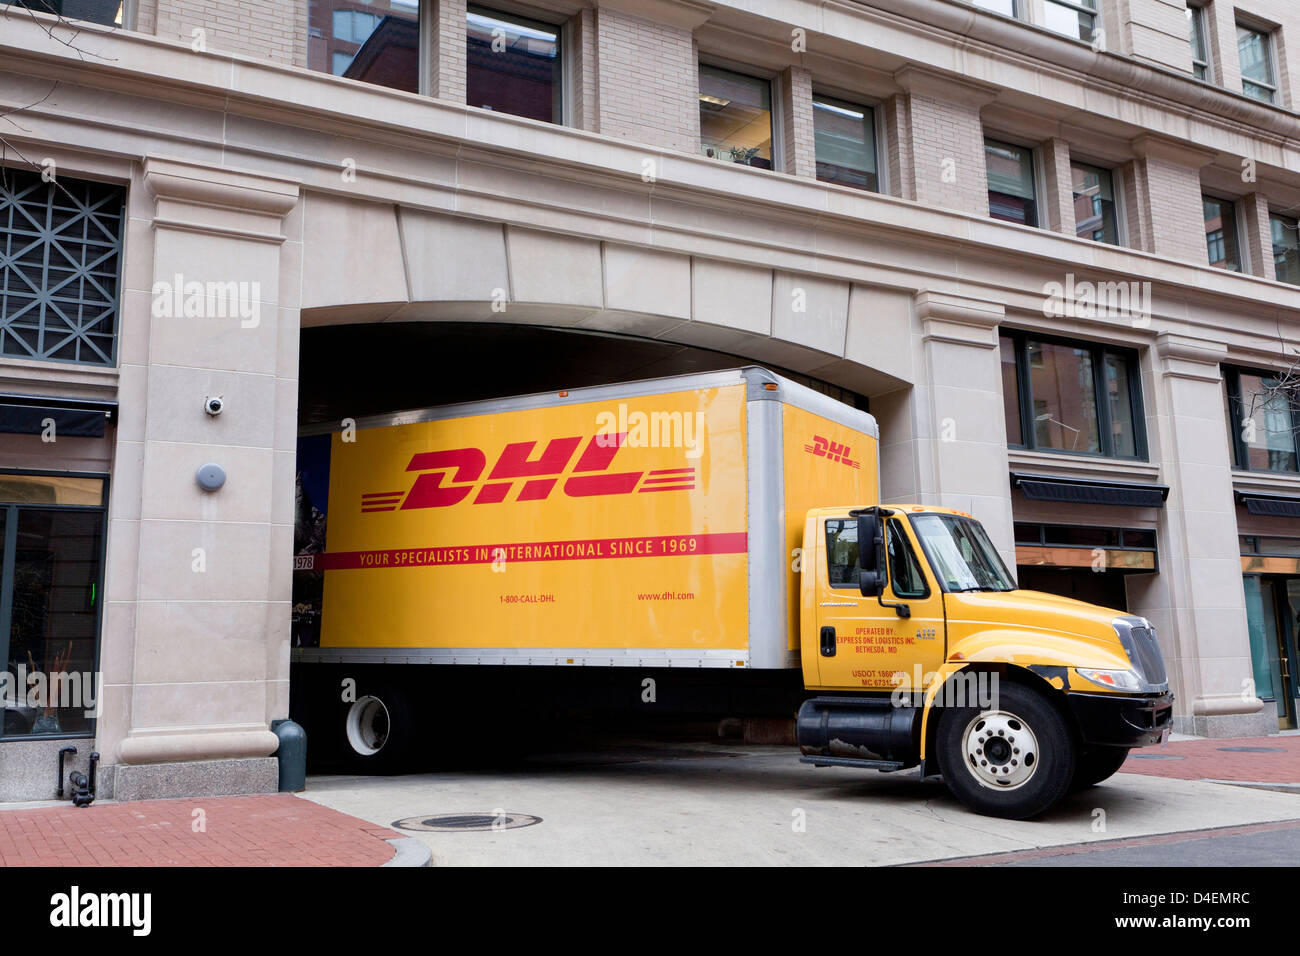 DHL delivery truck - Stock Image